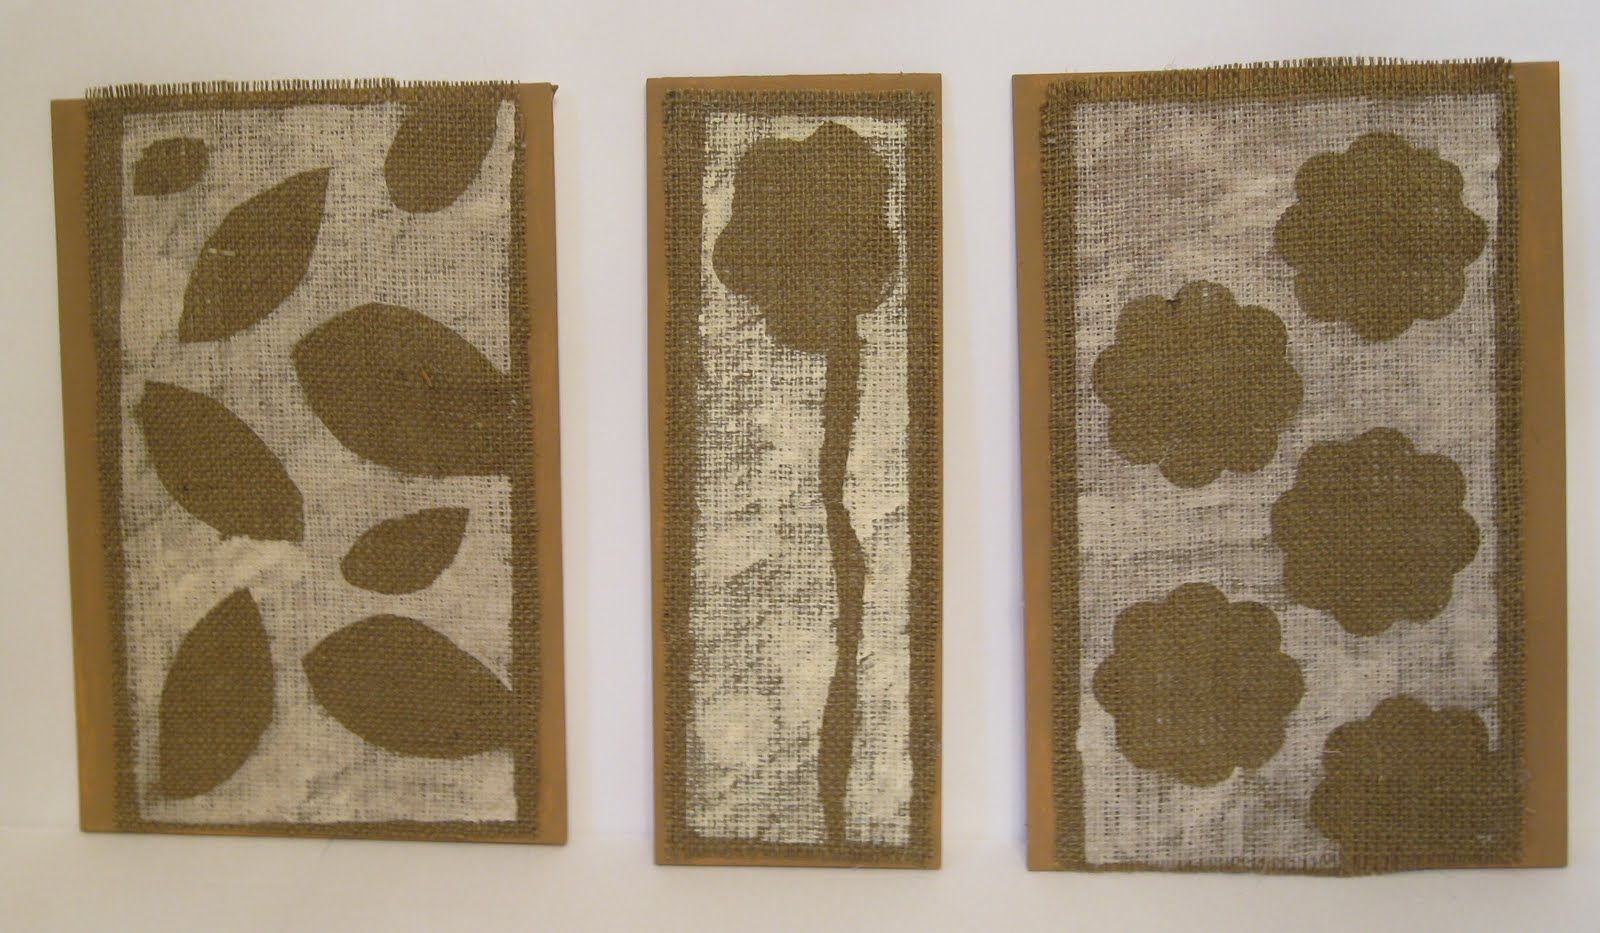 Monkey See, Monkey Do! Burlap Wall Art. Decorative Light Covers. Room Decor For Kids. Rooms For Rent In Silver Spring Md. Purple And Orange Bedroom Decor. Making Halloween Decorations. Wall Frames Decor. Dining Room Side Table. Best Way To Soundproof A Room